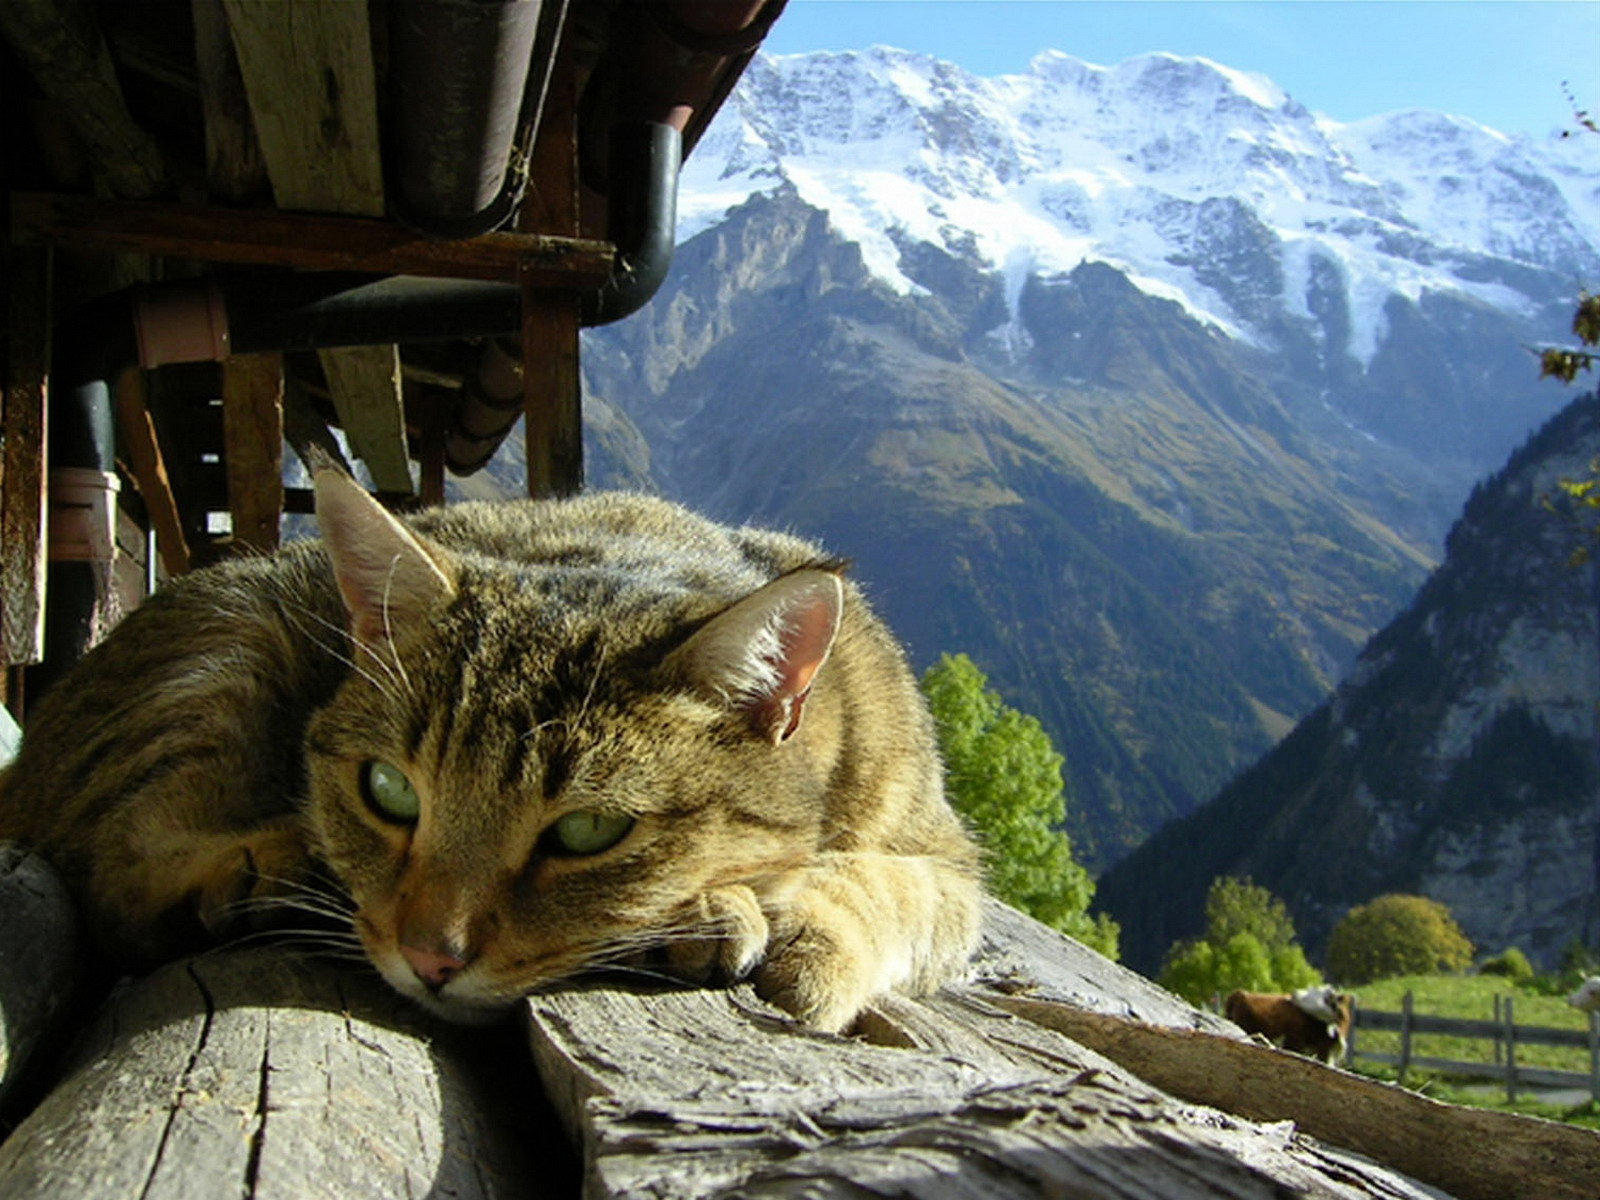 http://4.bp.blogspot.com/-aAs1KLNQKI4/UIUR7jVddHI/AAAAAAAAHww/fT5w5_bH6mo/s1600/mountains_cats_sunlight_hut_alps_cat_desktop_1600x1200_hd-wallpaper-602654.jpeg